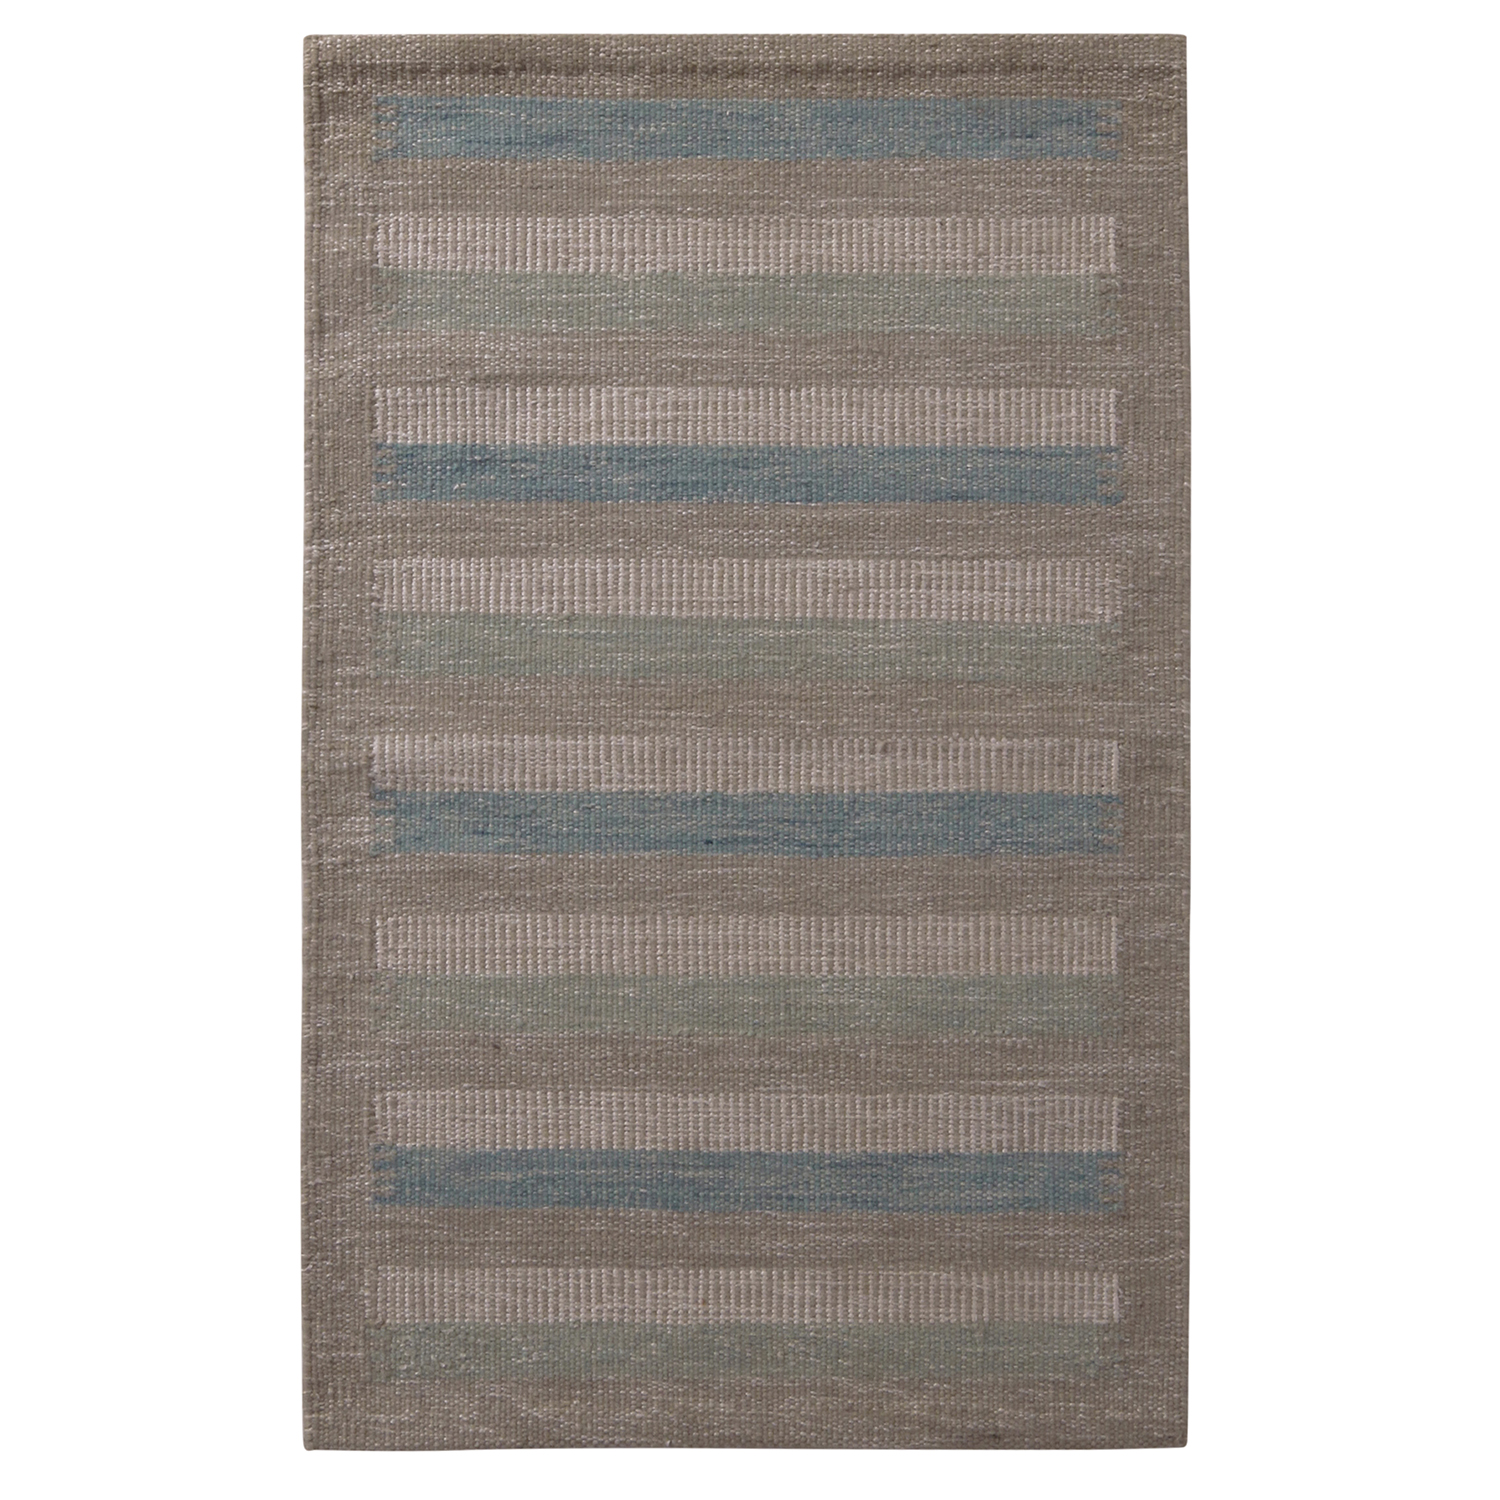 Rug Kilim S Scandinavian Style Striped Beige Brown Green And Blue Wool Kilim Rug Kilim